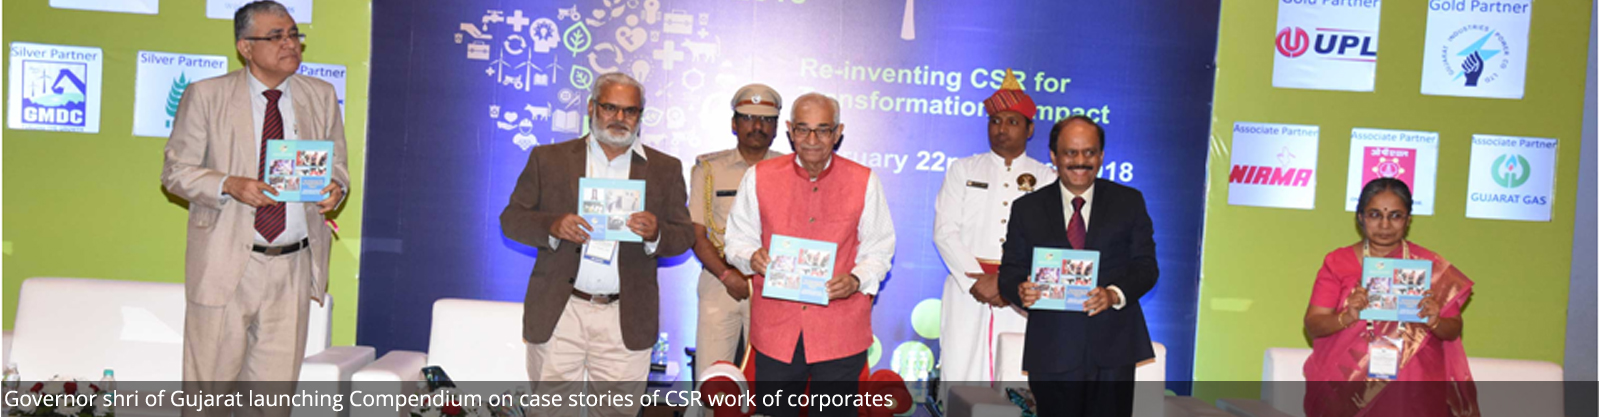 Governor shri of Gujarat launching Compendium on case stories of CSR work of corporates